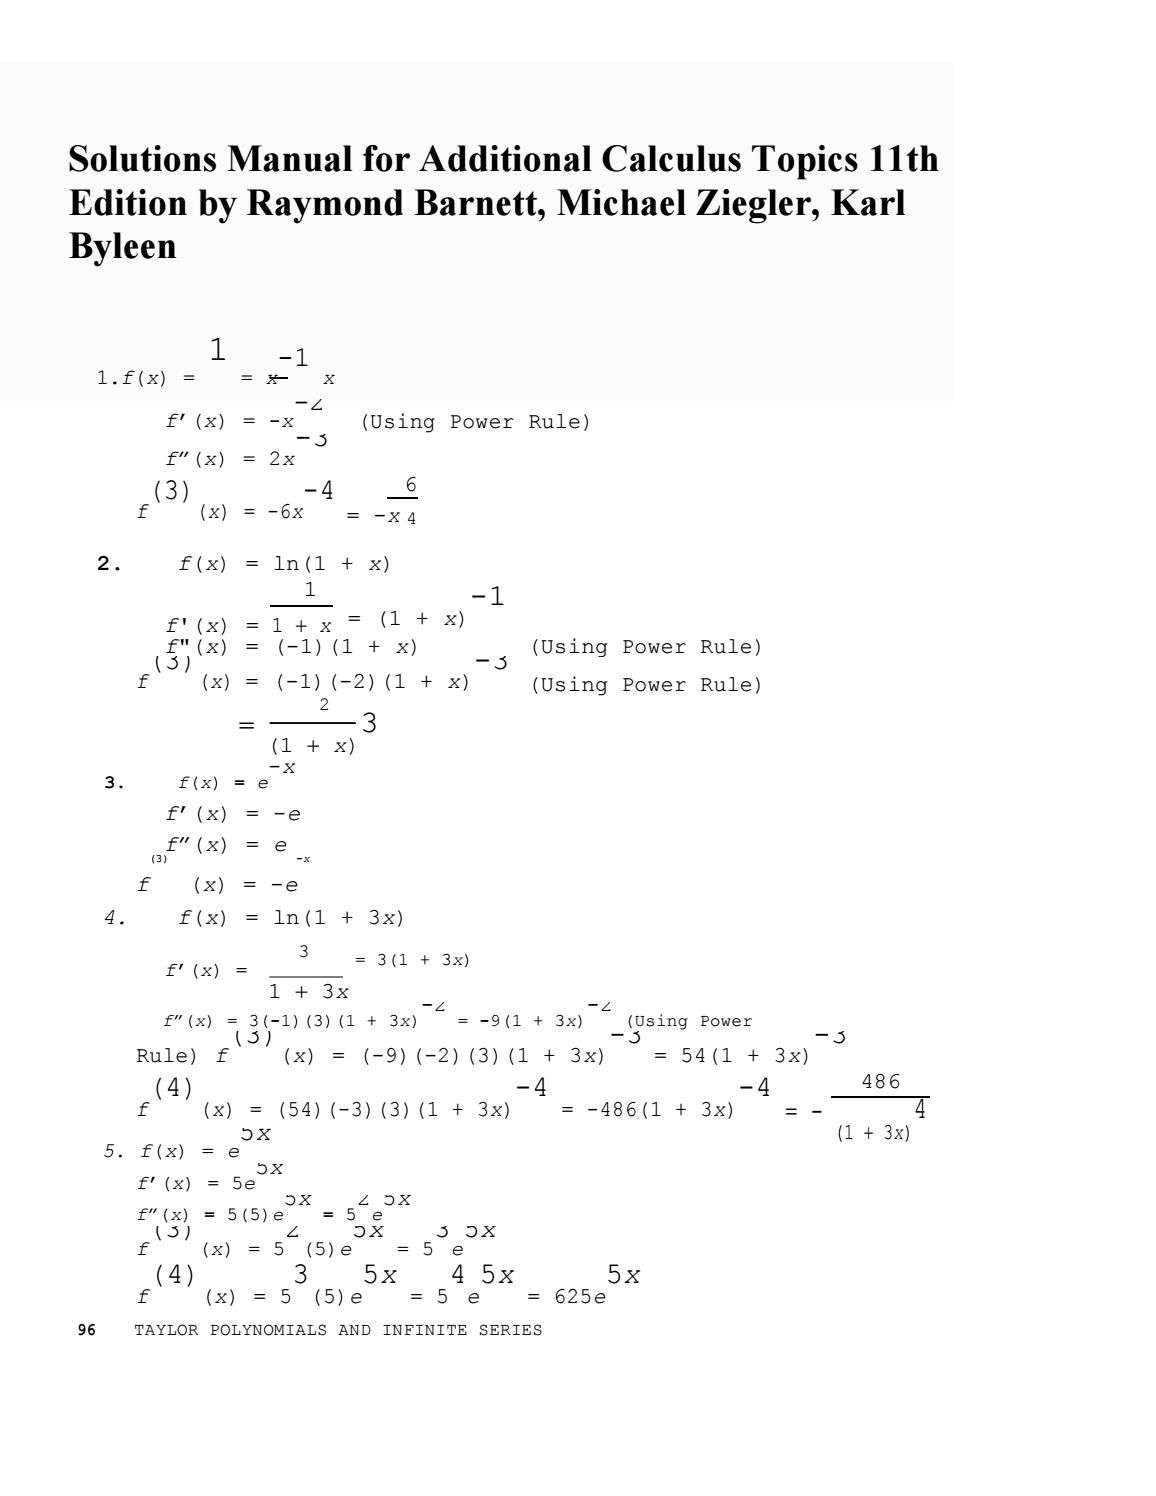 Link solutions manual for additional calculus topics 11th edition by  raymond barnett karl byleen mic